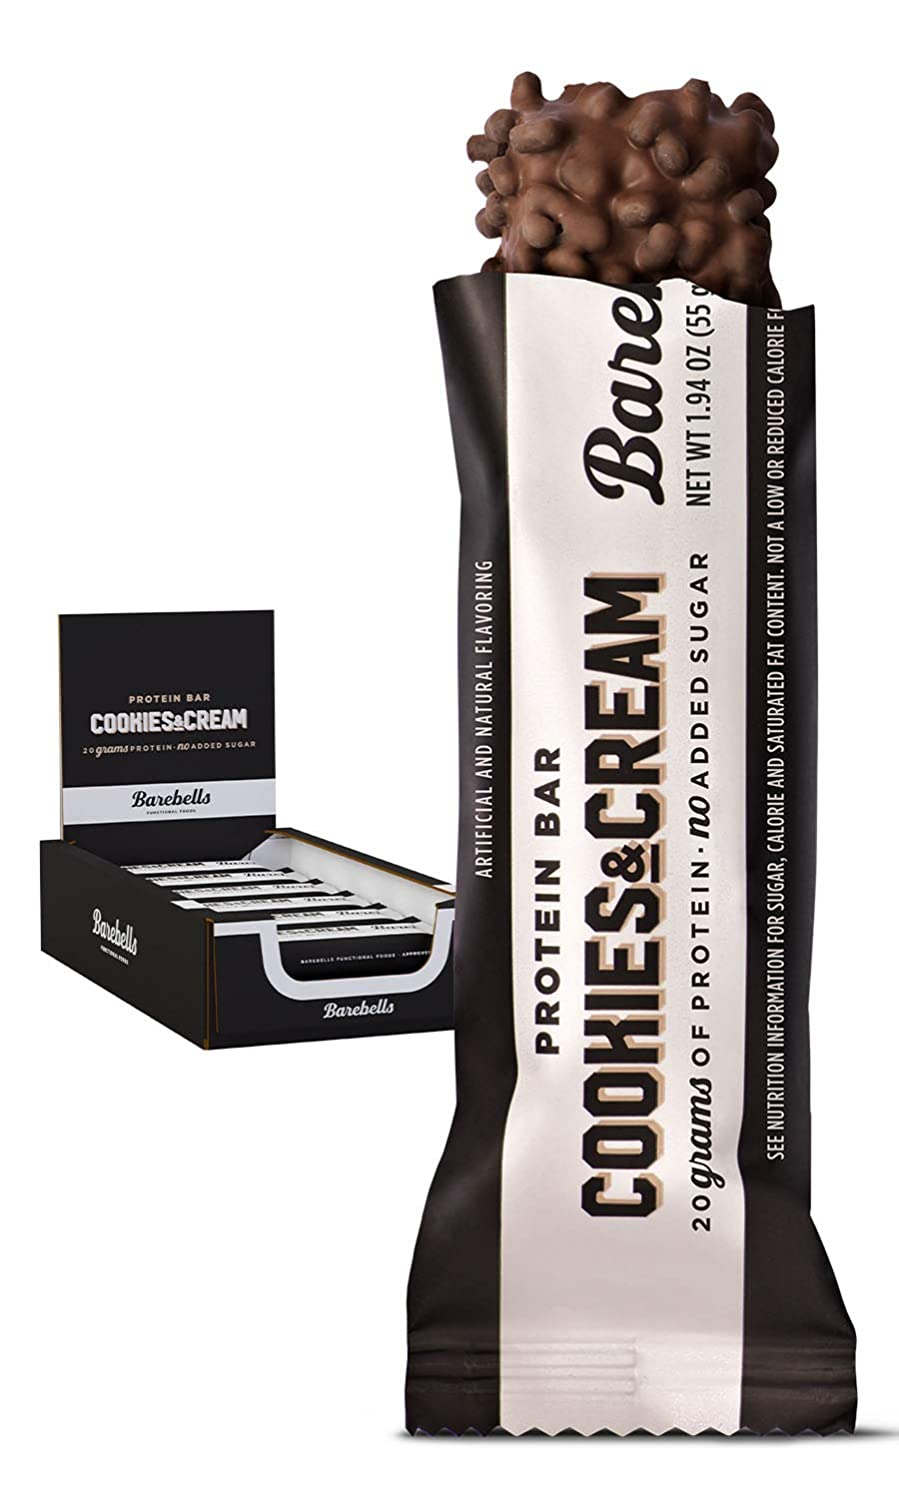 Barebells Protein Bar - Cookies & Cream 12 Bars x 55g